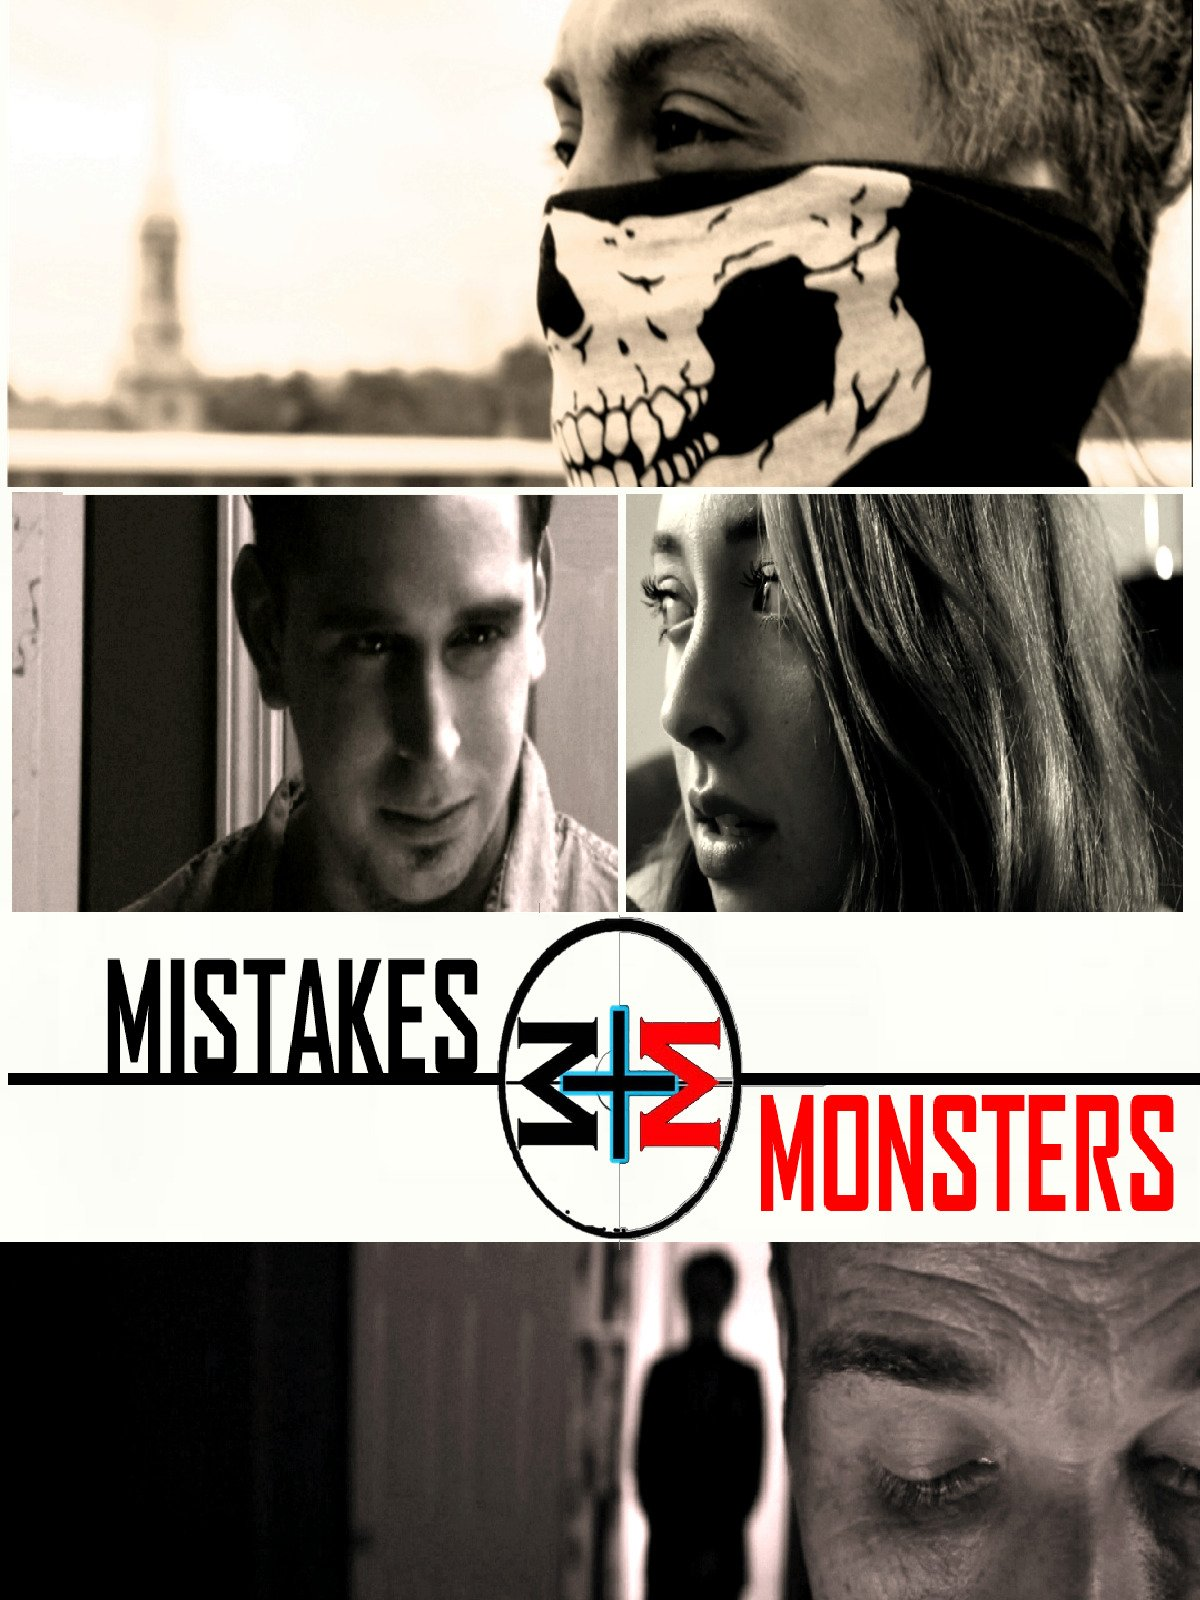 Mistakes and Monsters